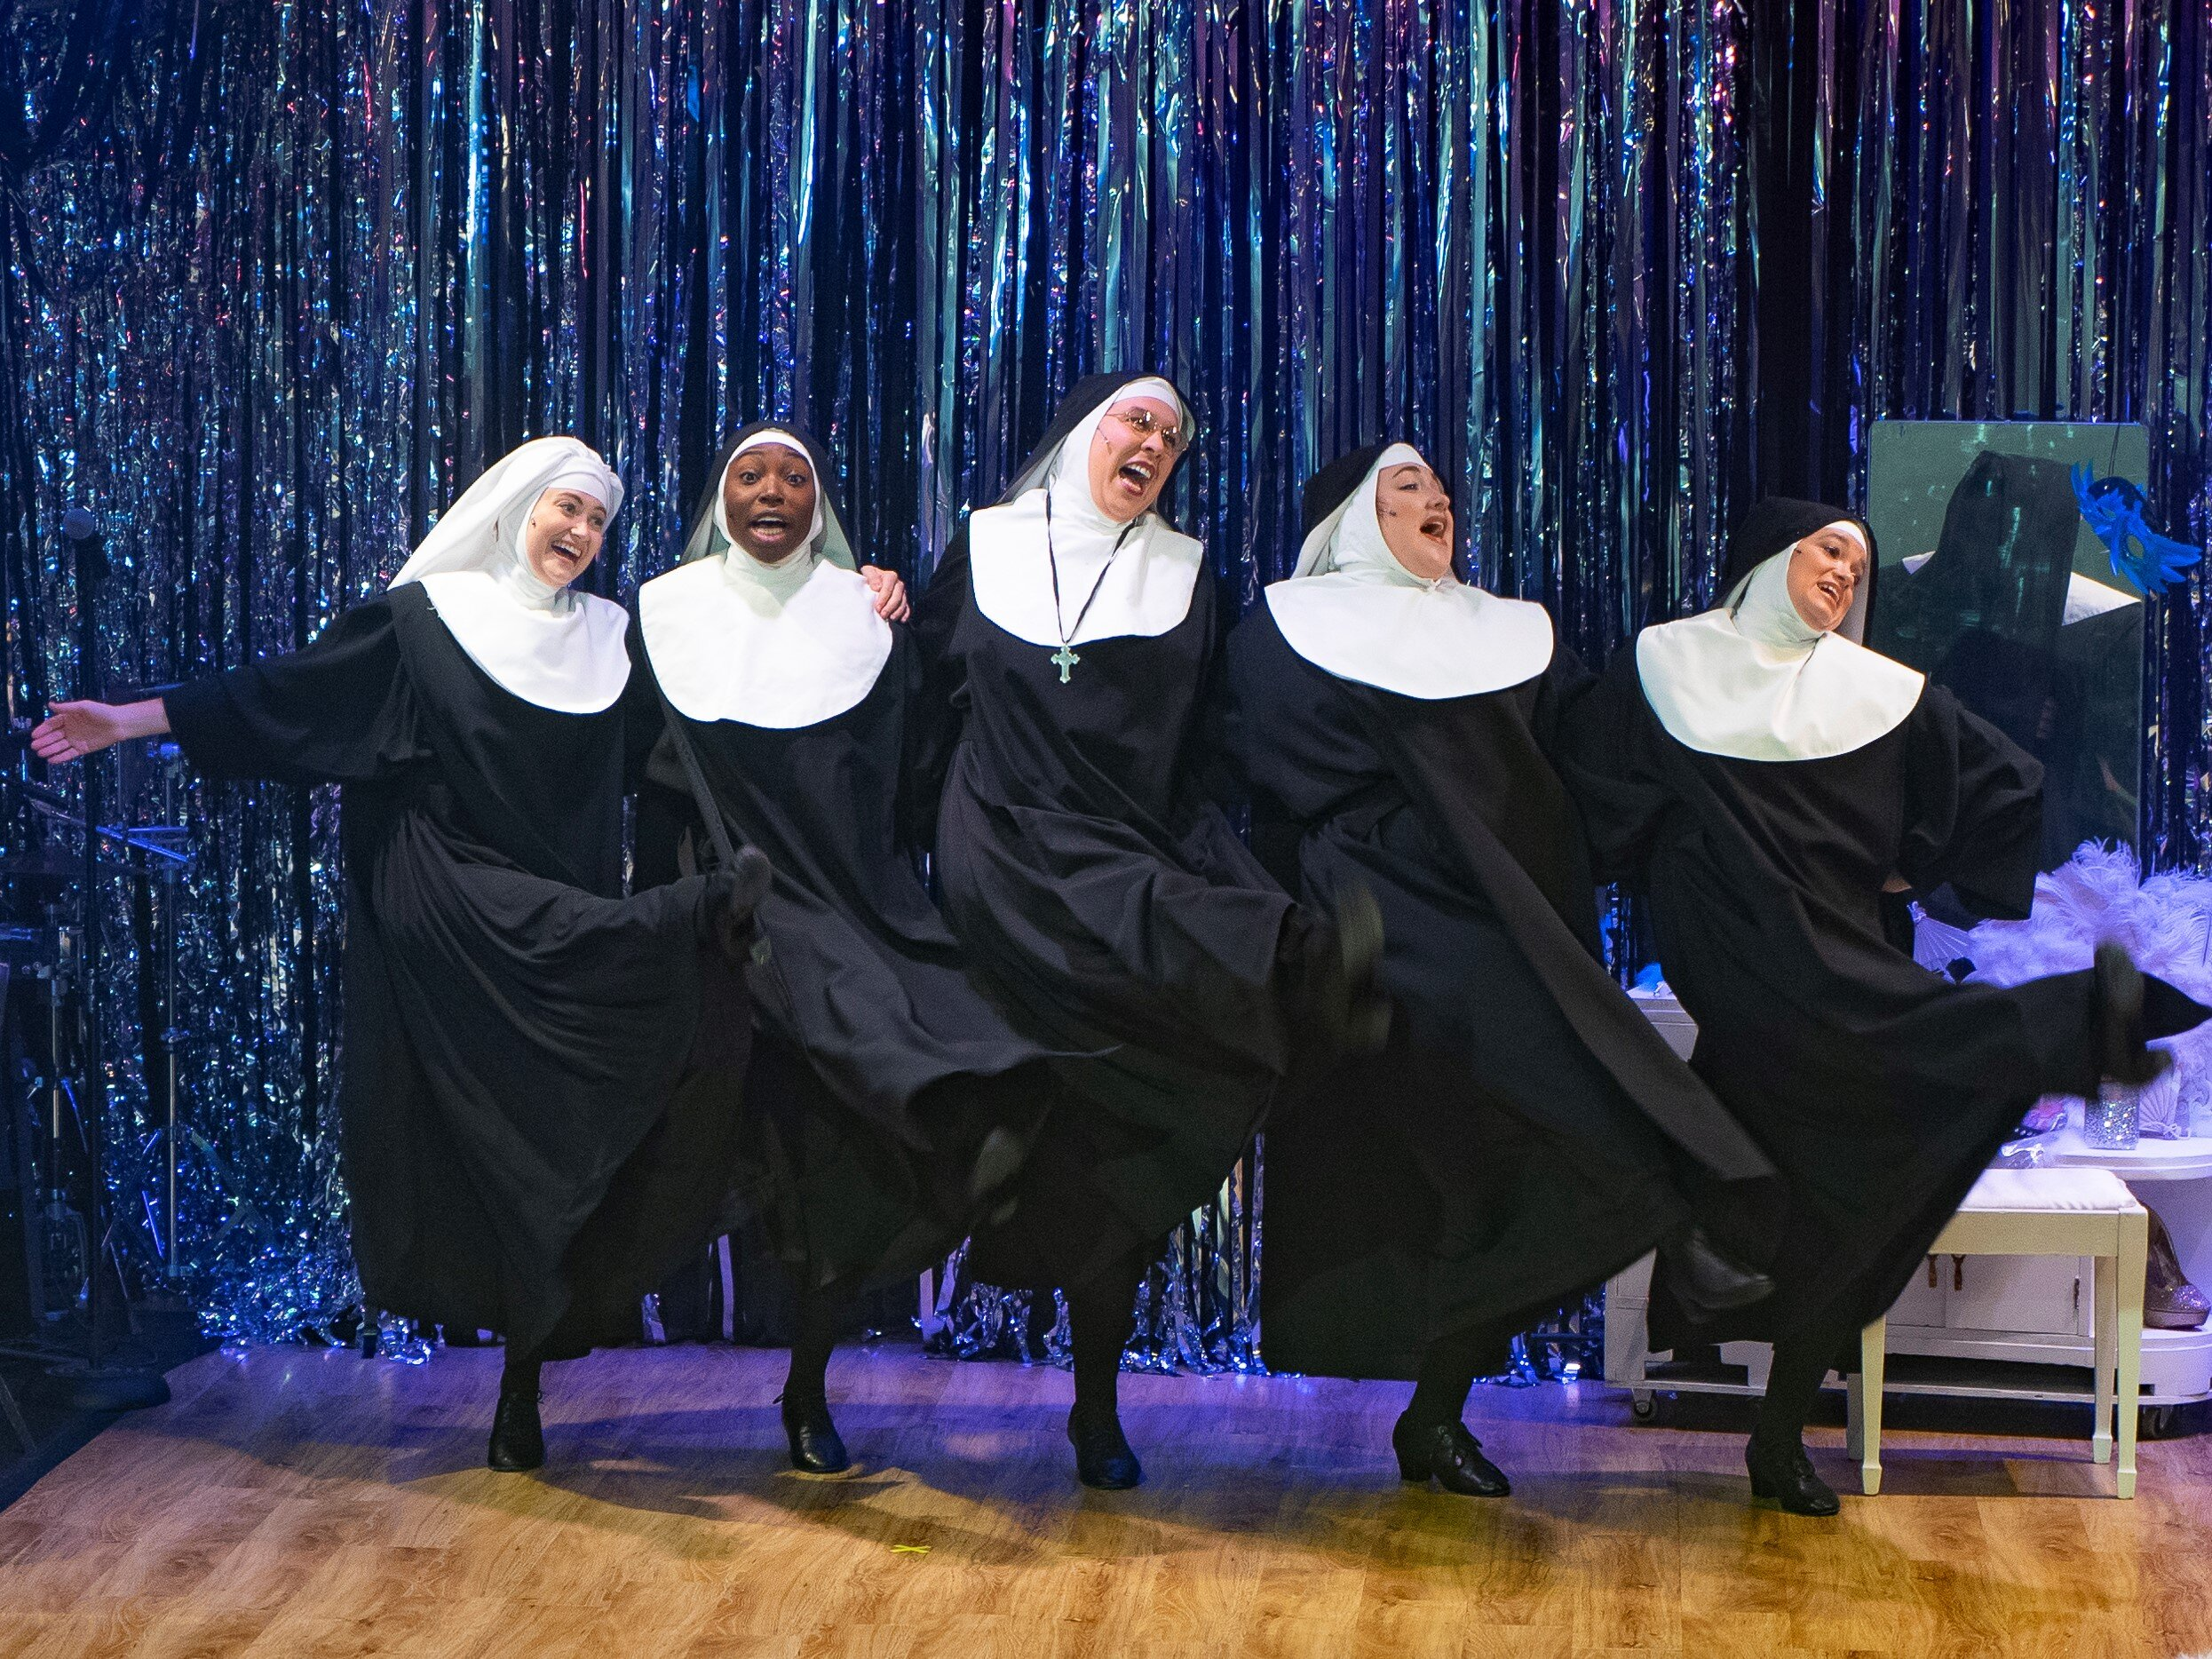 Sister Mary Leo (Rachel Oremland), Sister Mary Hubert (Brandi Porter), Sister Mary Regina (Amanda Forker), Sister Robert Anne (Lily Dickinson), Sister Mary Amnesia (Hillary Ekwall) in Playhouse on Park's Nunsense, directed by Darlene Zoller (photos by Rich Wagner)